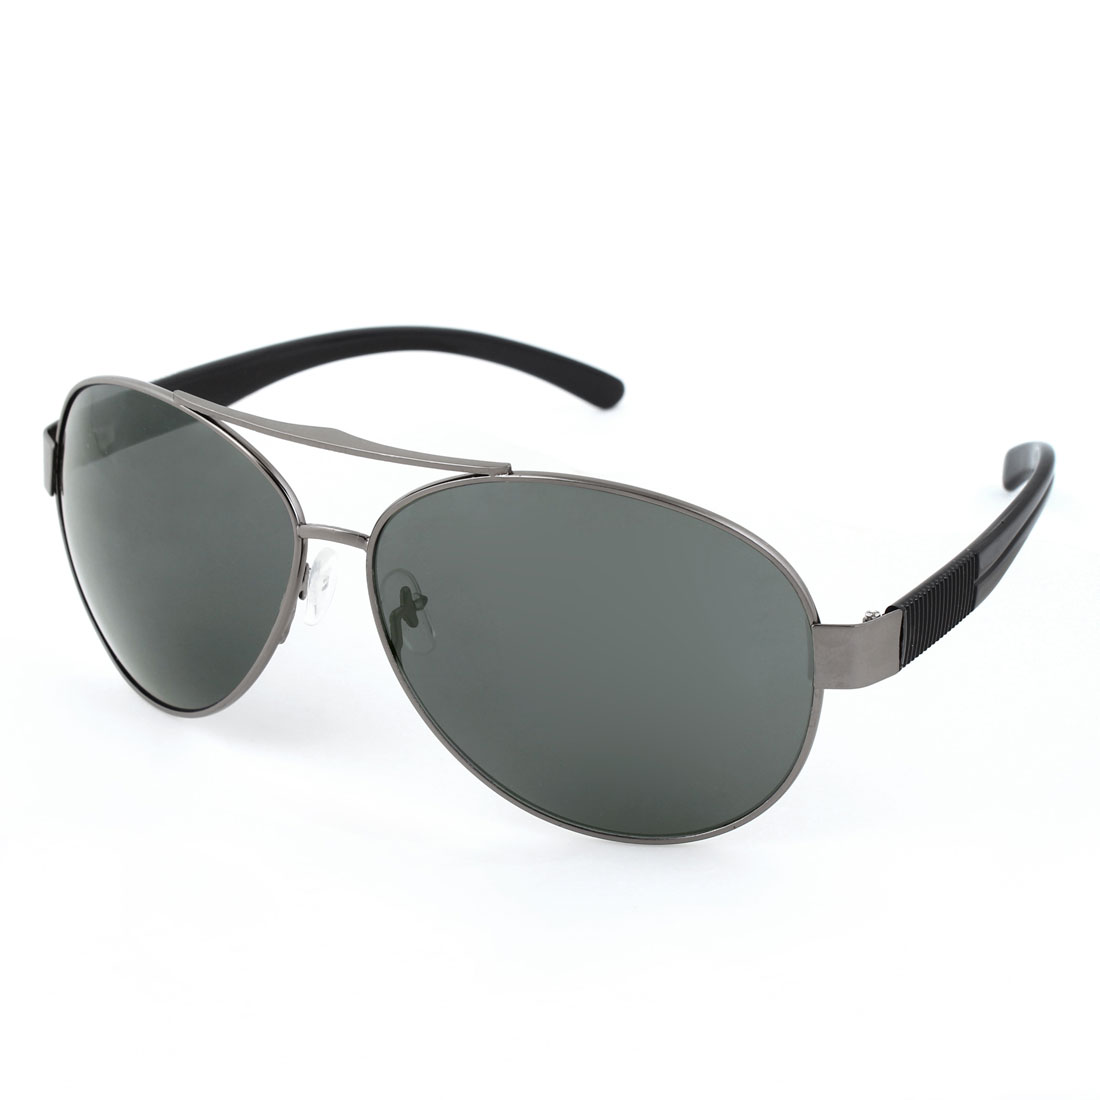 Men Plastic Black Arms Dark Gray Full Metal Rim Frame Teardrop Lens Sunglasses